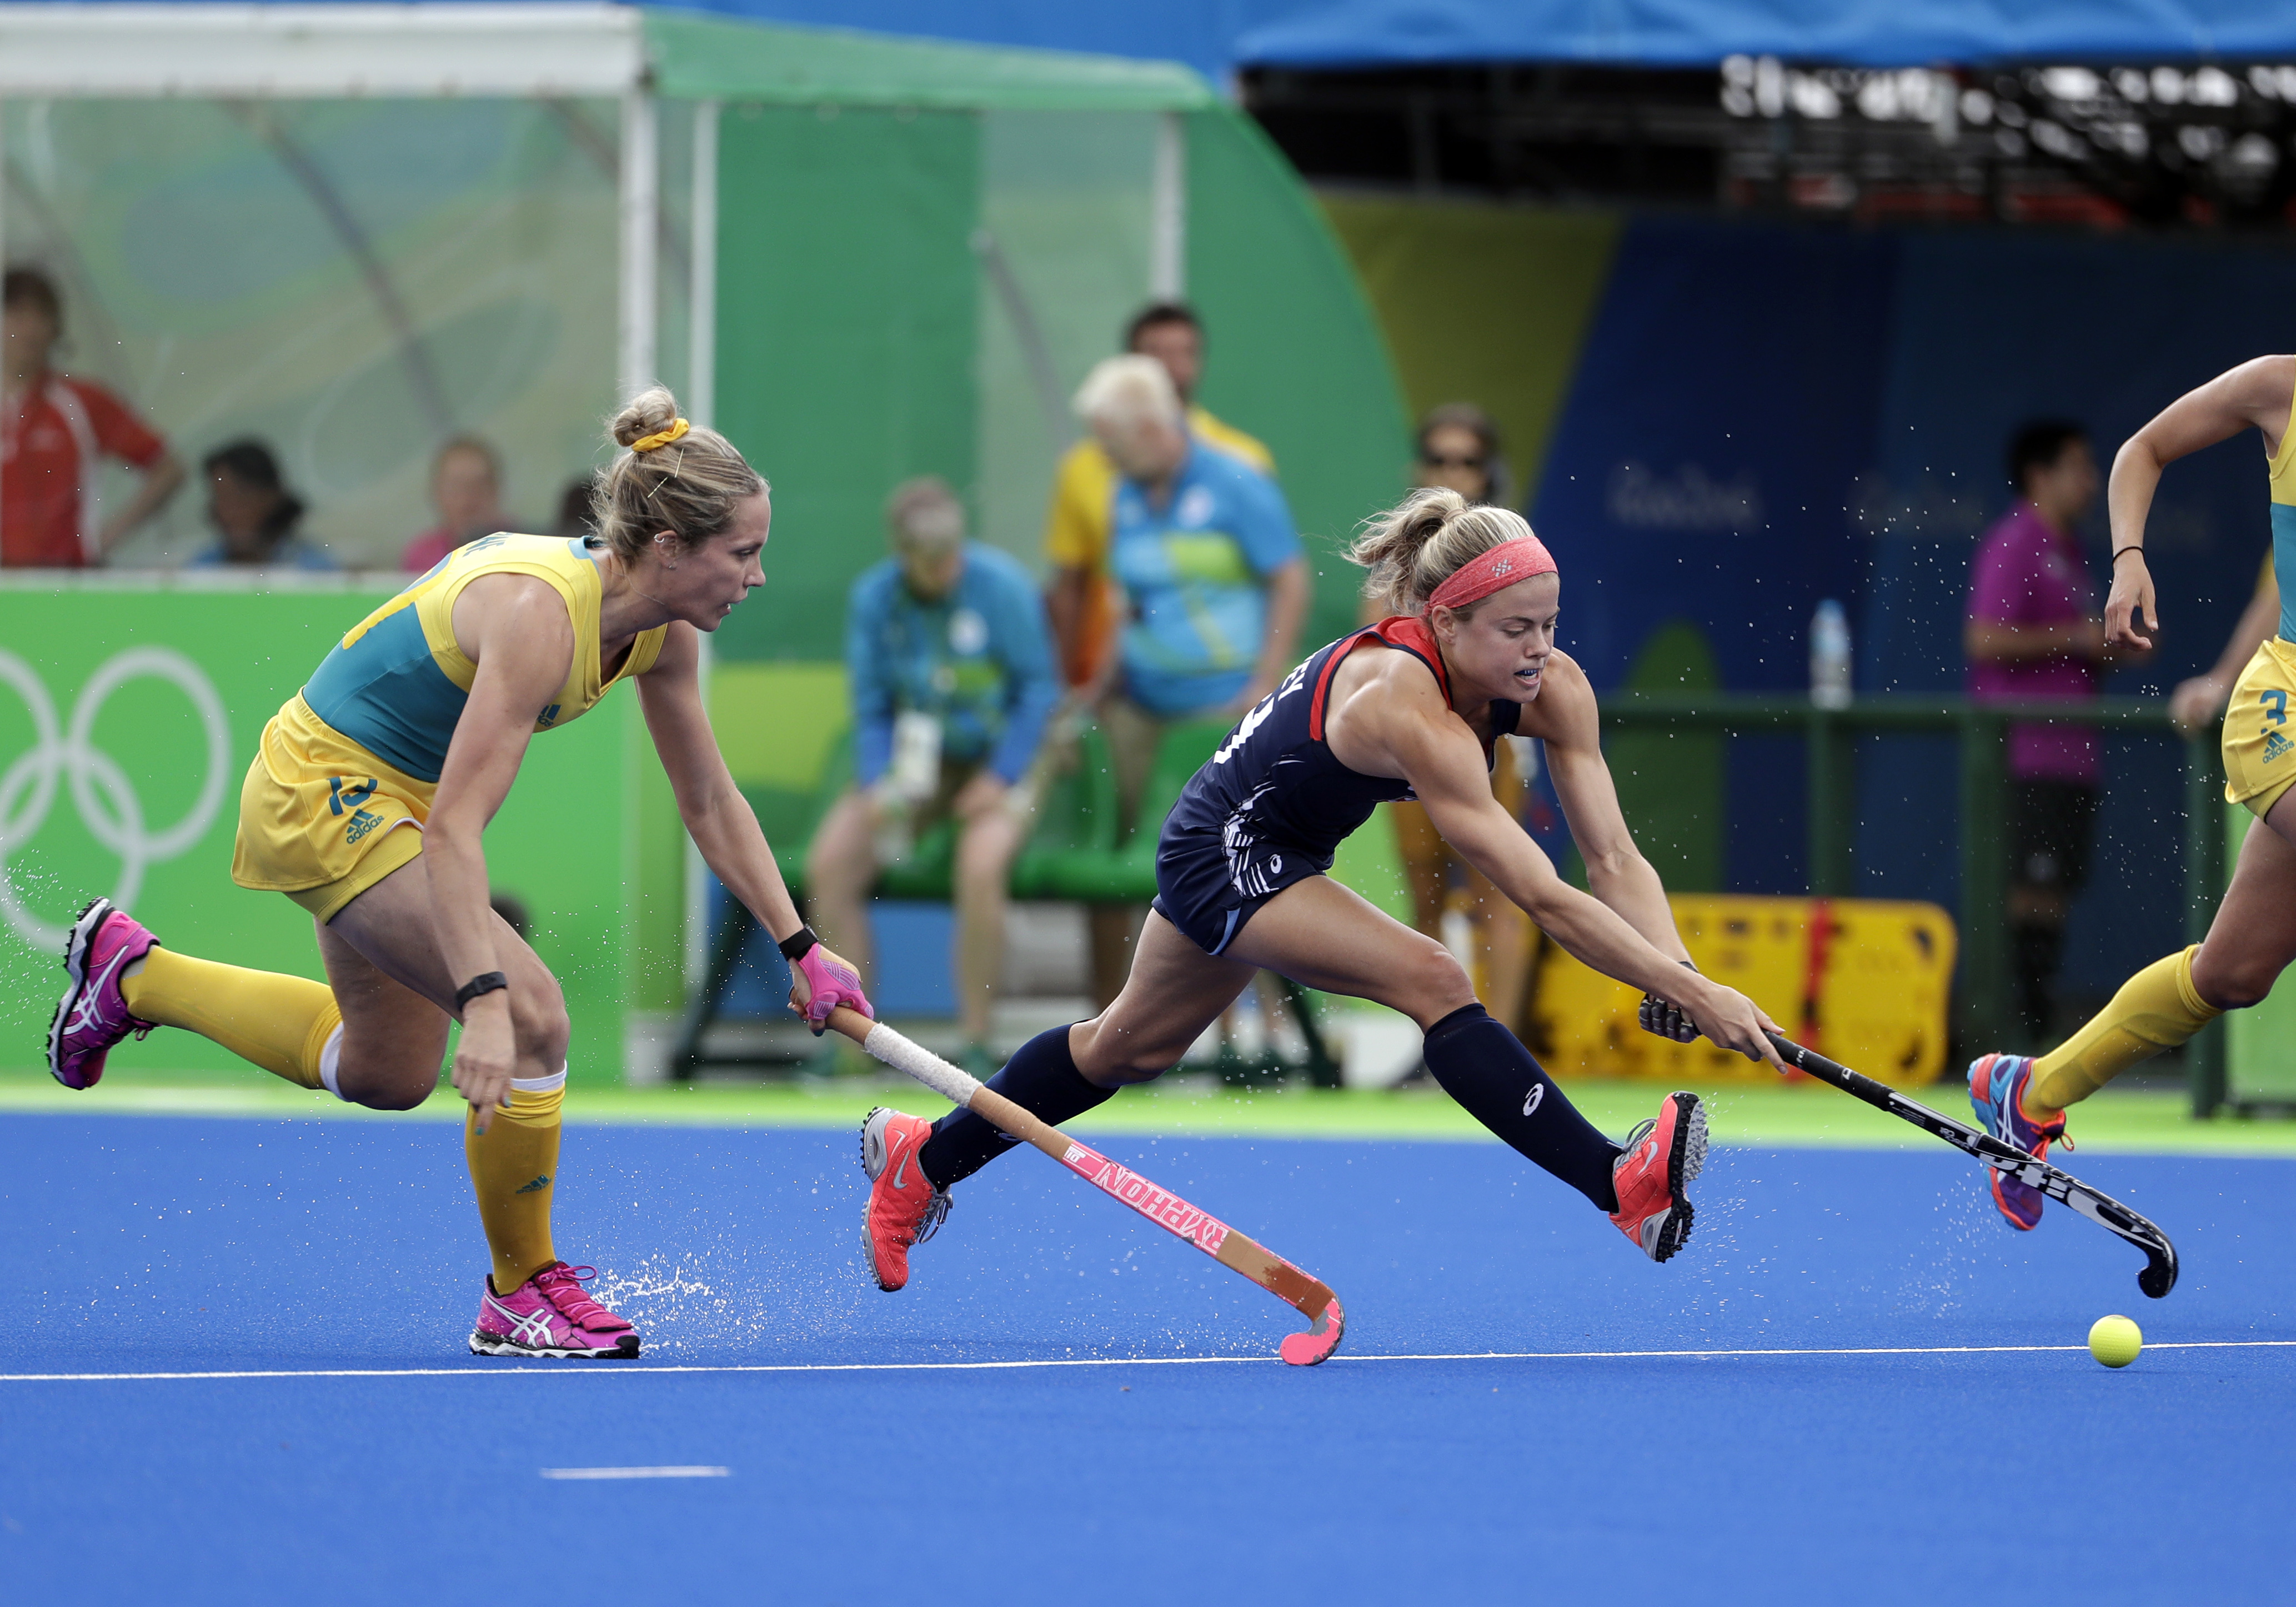 United States' Kathleen Sharkey, right, fights for the ball against Australia's Edwina Bone, left, during a women's field hockey match at 2016 Summer Olympics in Rio de Janeiro, Brazil, Monday, Aug. 8, 2016. (AP Photo/Hussein Malla)